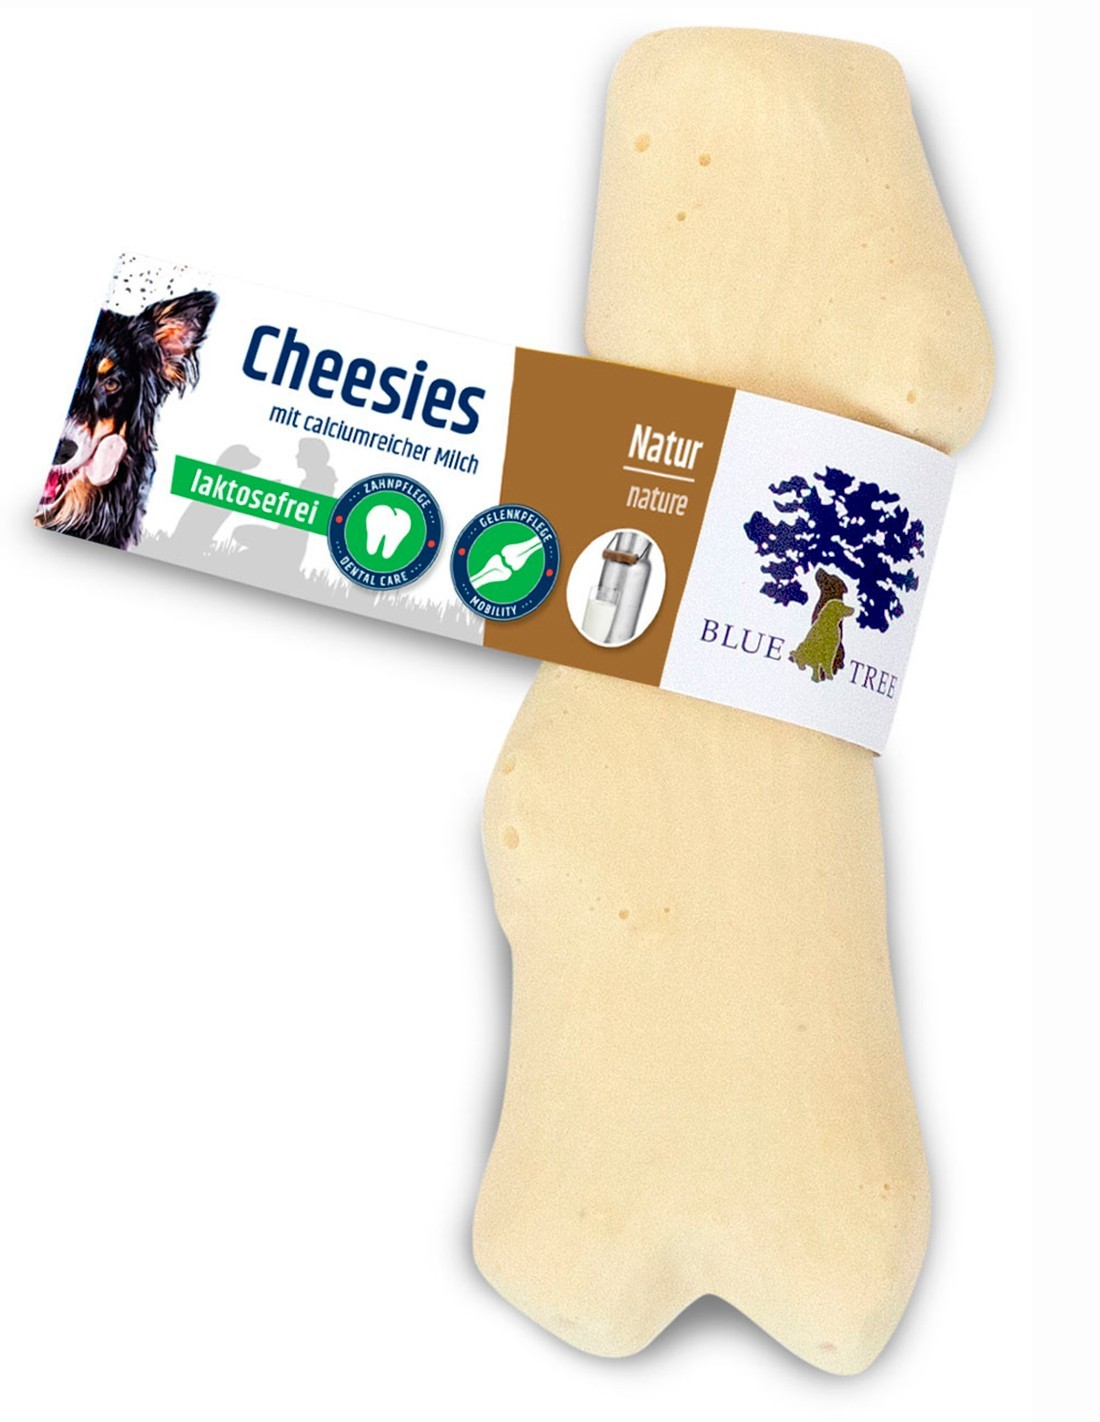 Blue Tree Snack Natural leche sin lactosa 50g